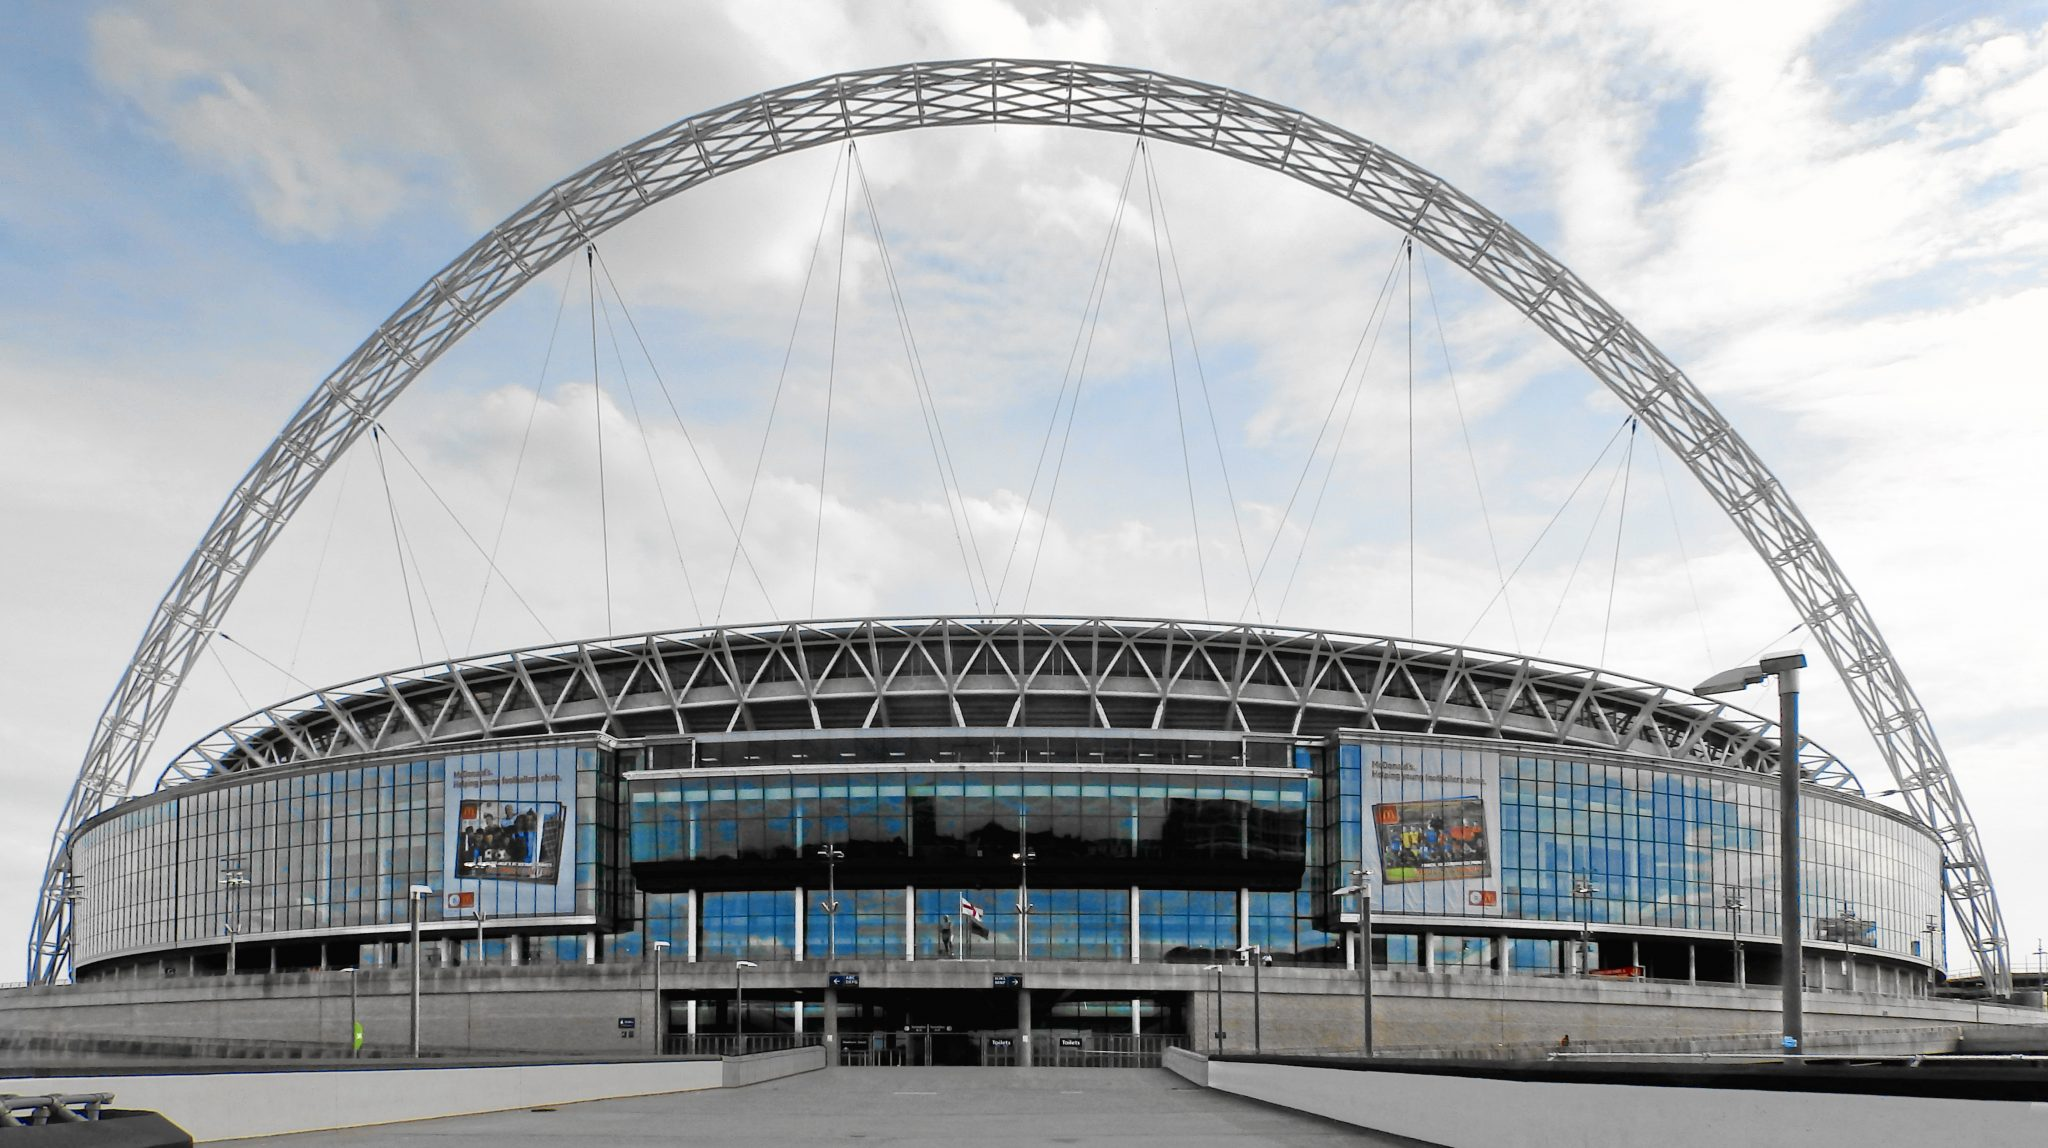 The Euro 2020 final will be played at Wembley